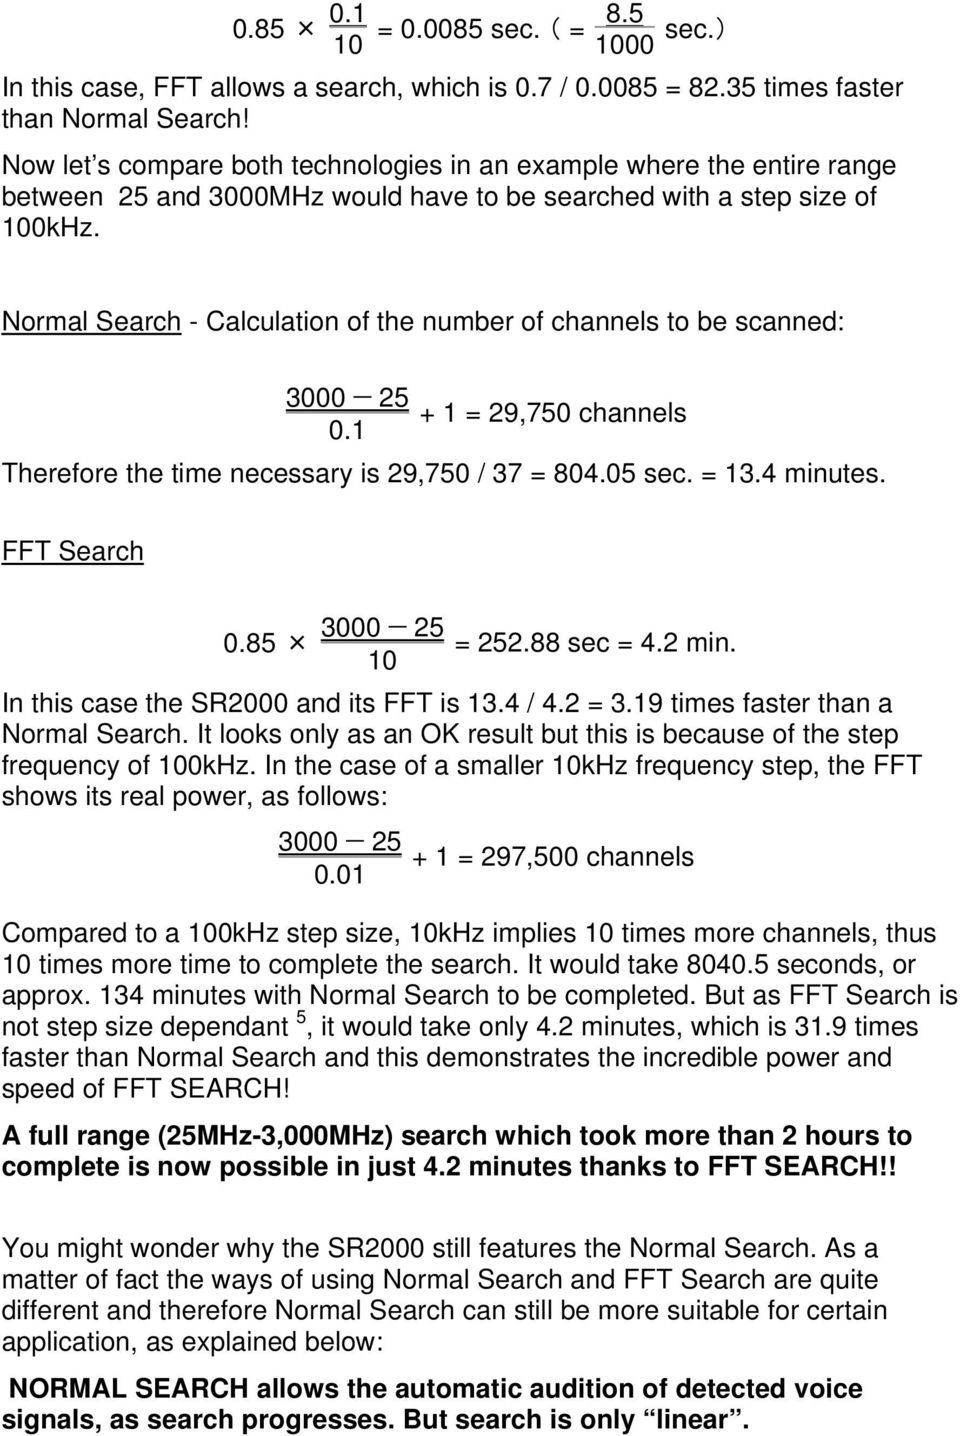 Normal Search - Calculation of the number of channels to be scanned: 3000 25 + 1 = 29,750 channels 0.1 Therefore the time necessary is 29,750 / 37 = 804.05 sec. = 13.4 minutes. FFT Search 3000 25 0.